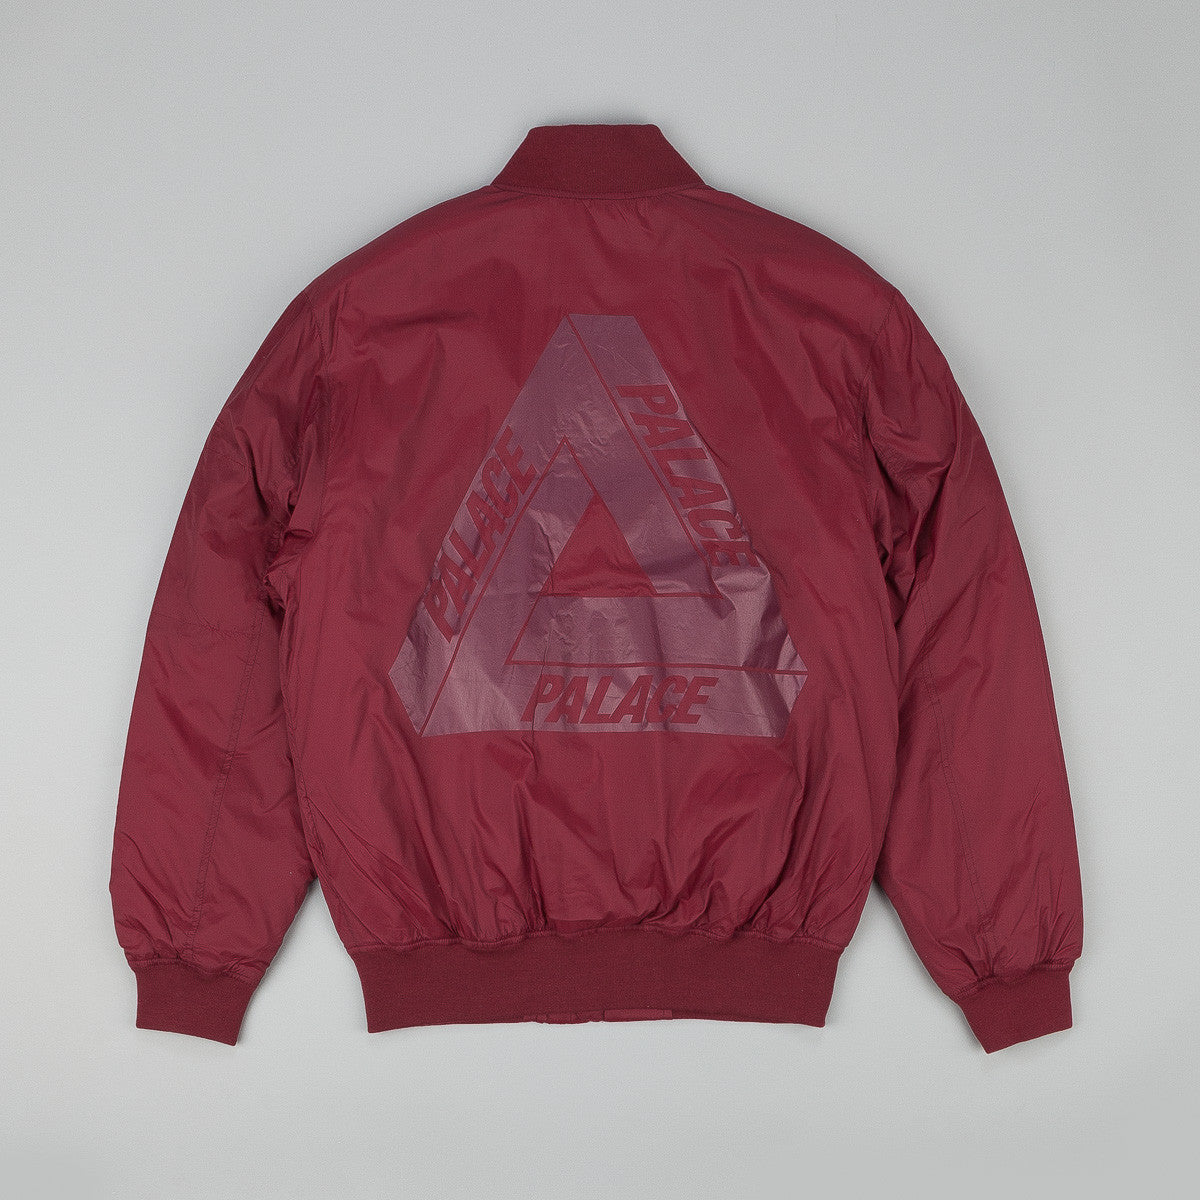 Palace Thinsulate Bomber Jacket - Cordovan